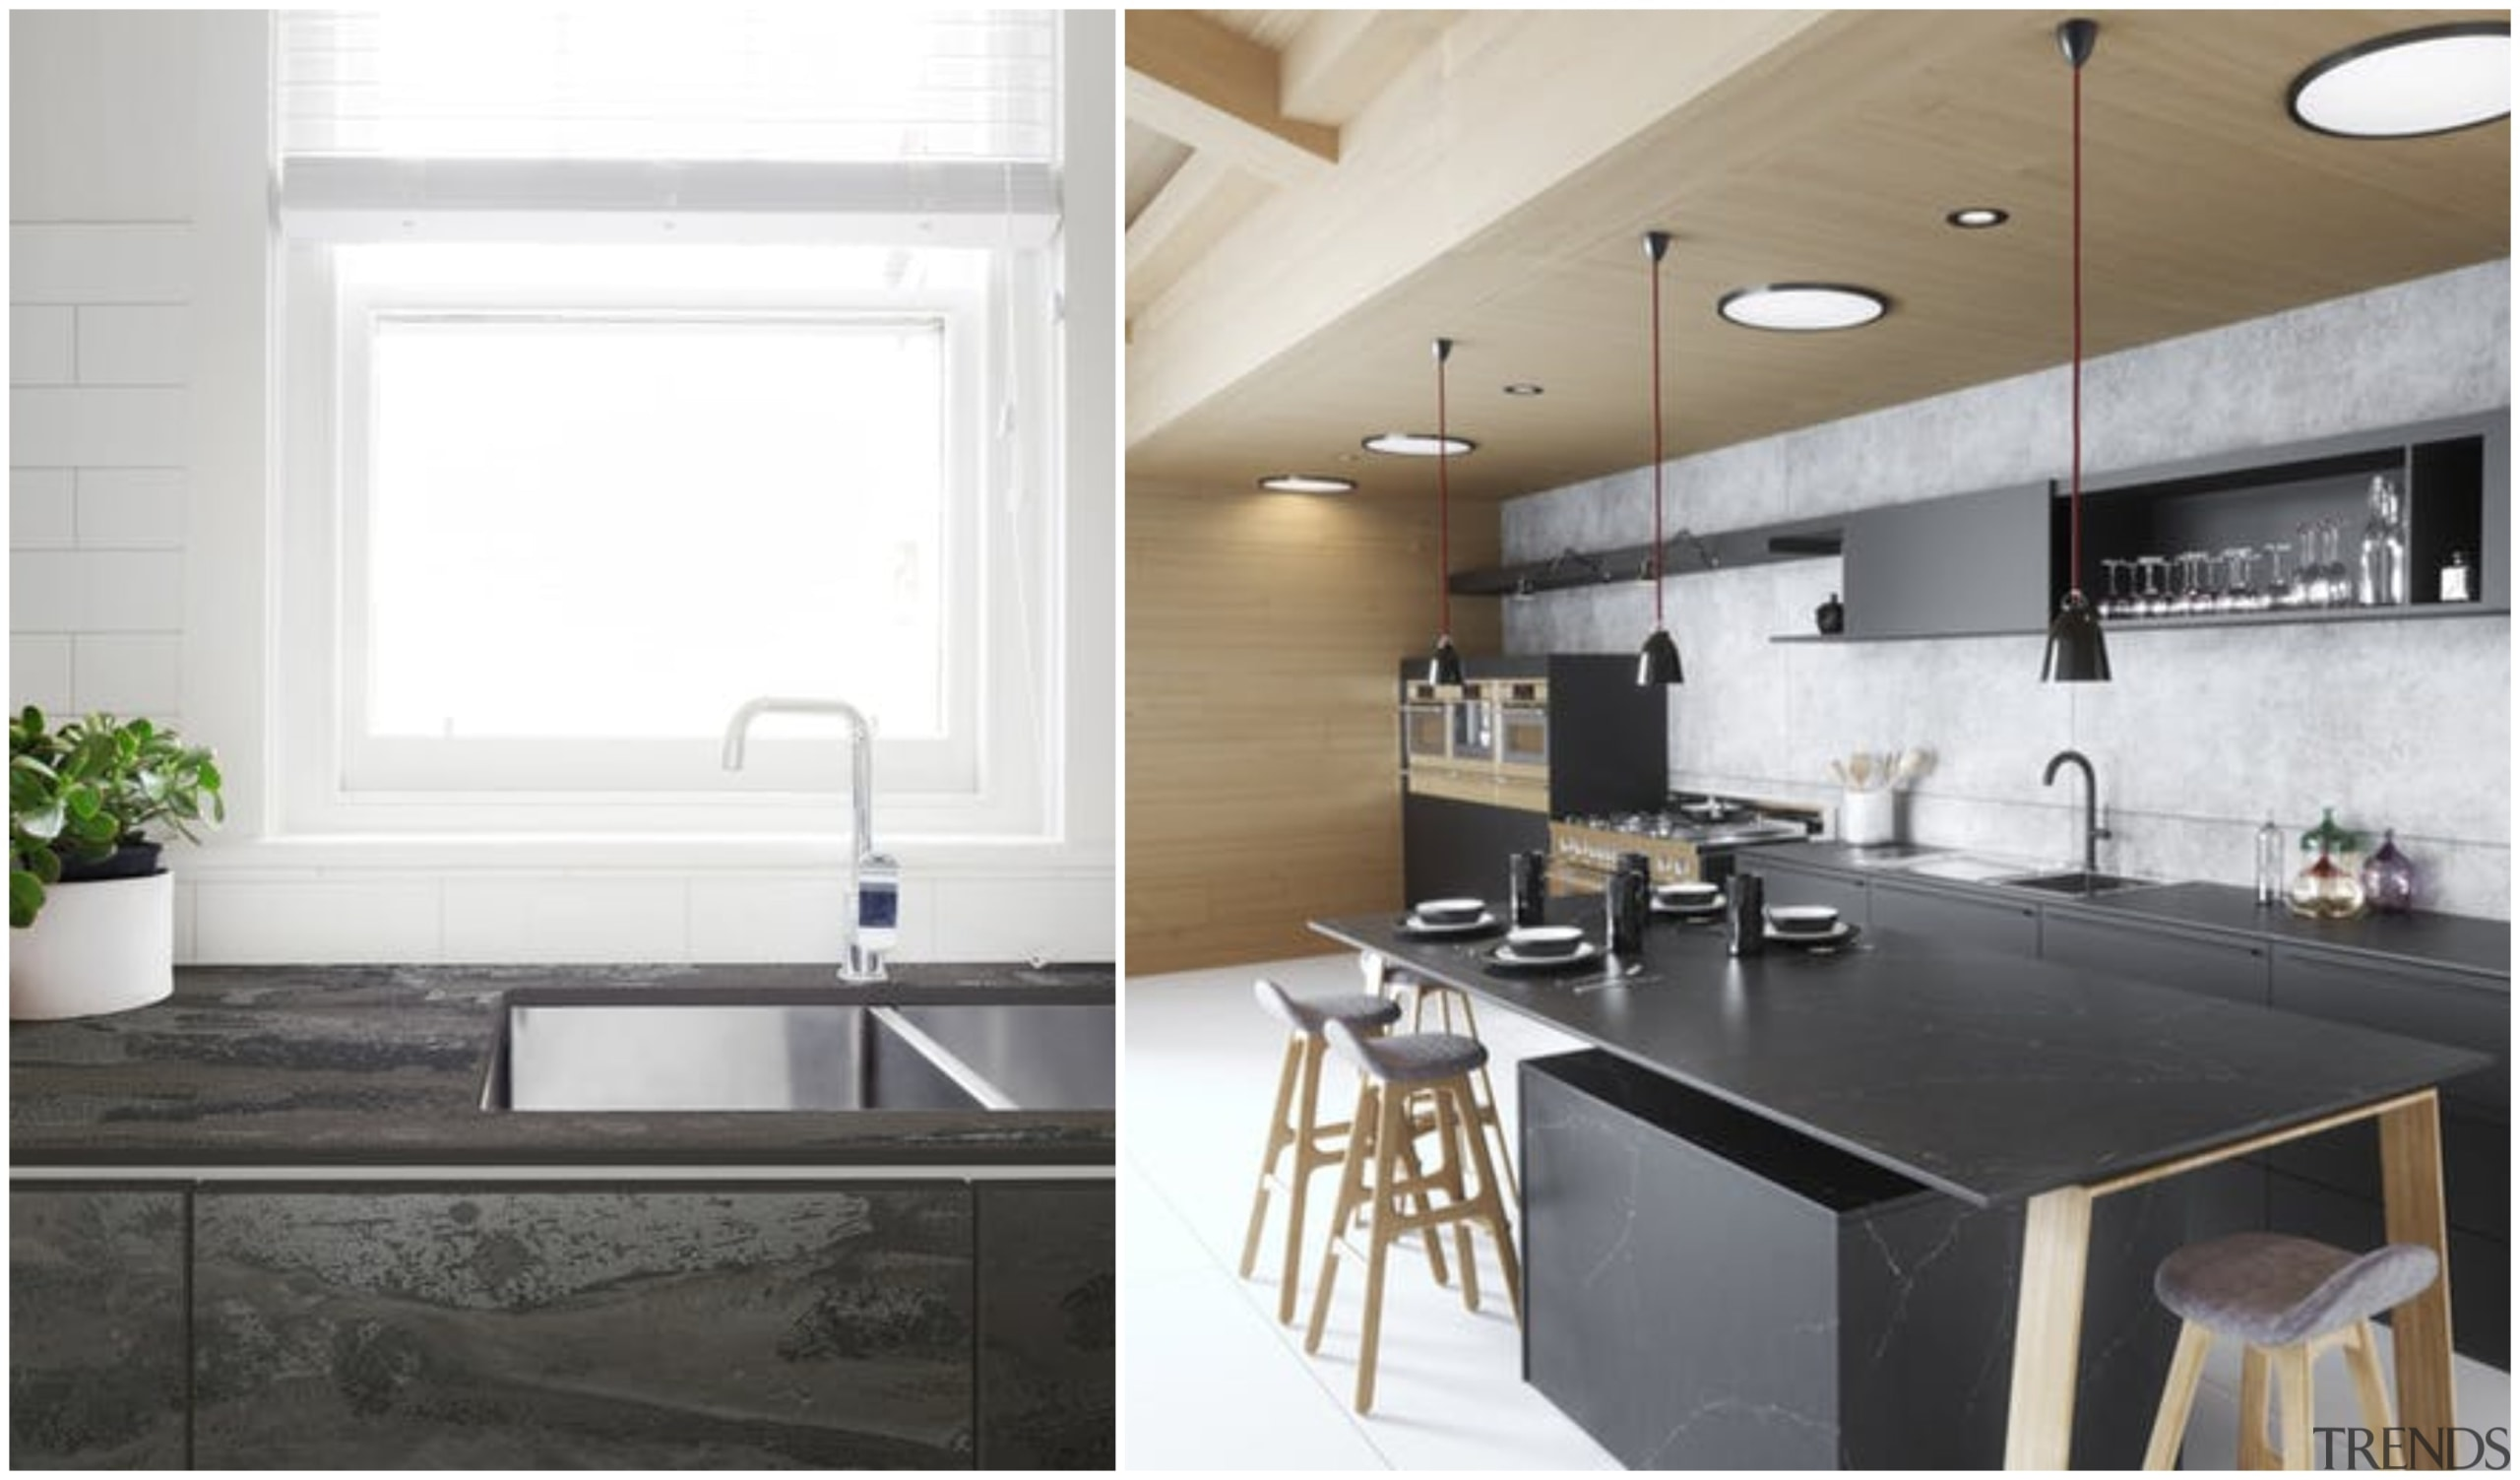 Dekton benchtop by Cosentino - Dekton benchtop by architecture, countertop, floor, home, interior design, kitchen, white